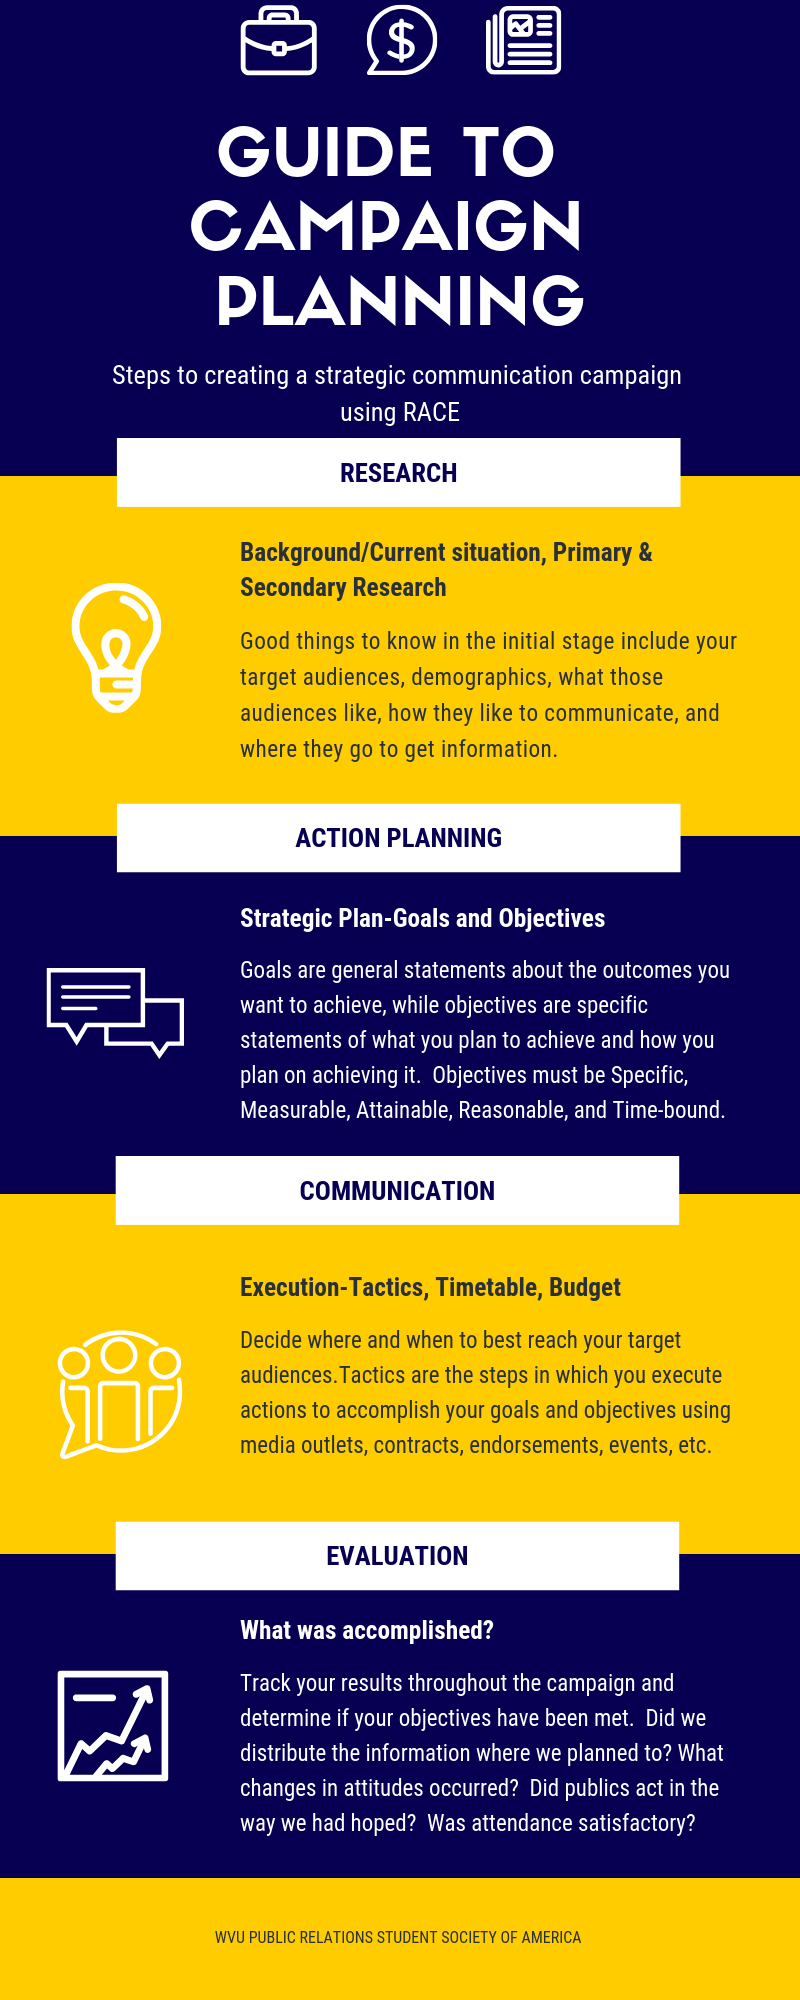 Guide to Campaign Planning | Public Relations Student Society of